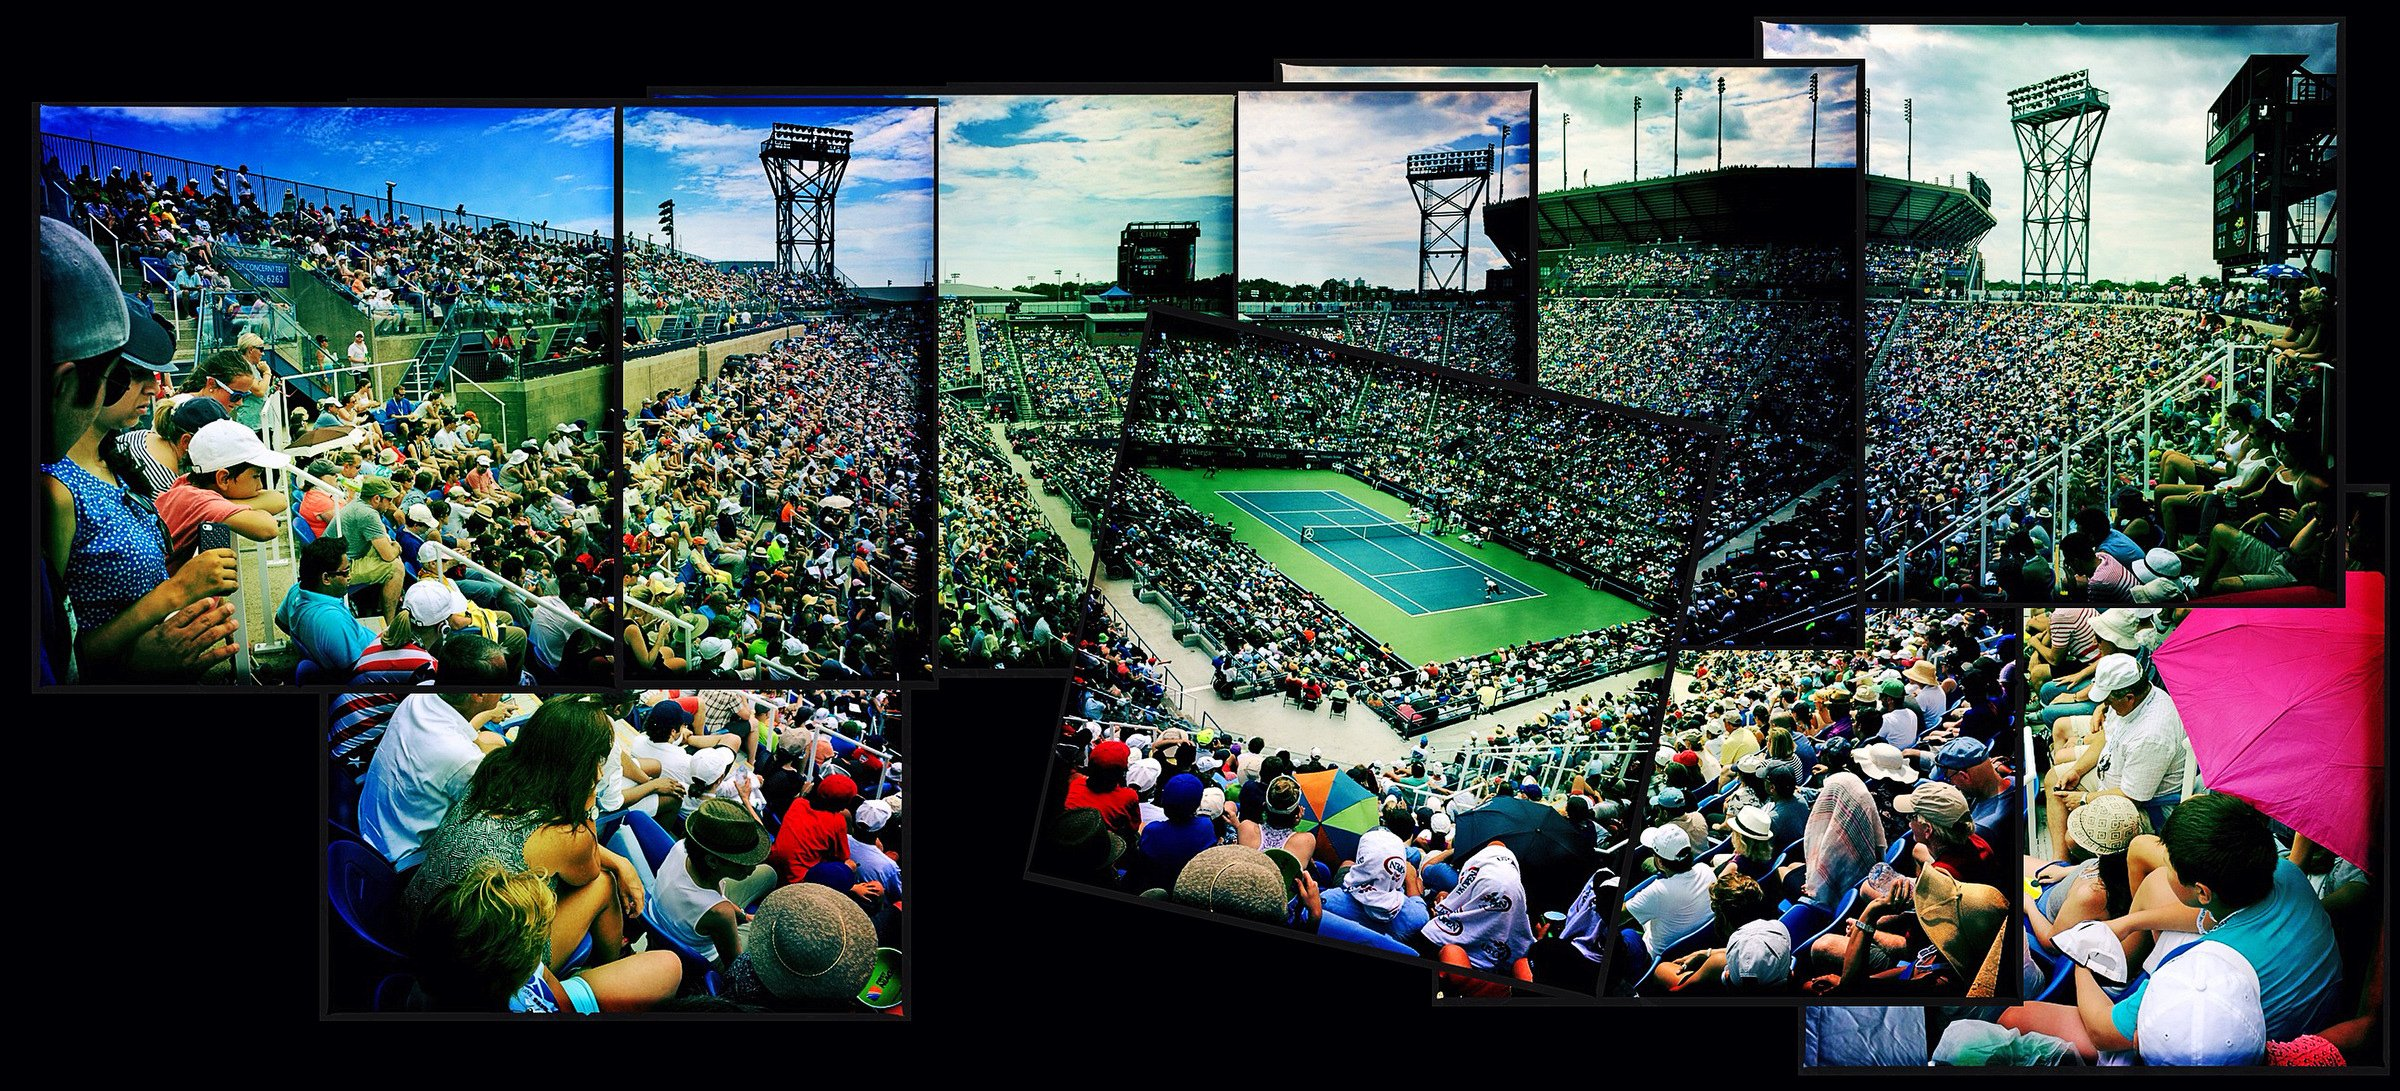 The number of seats in Arthur Ashe Stadium, the largest tennis stadium in the world. In 1997, the venue, which also has 90 luxury suites, five restaurants and a two-level players' lounge, replaced Louis Armstrong stadium as the primary court at the Open. A $100 million retractable roof will be completed over the stadium by the end of 2017.